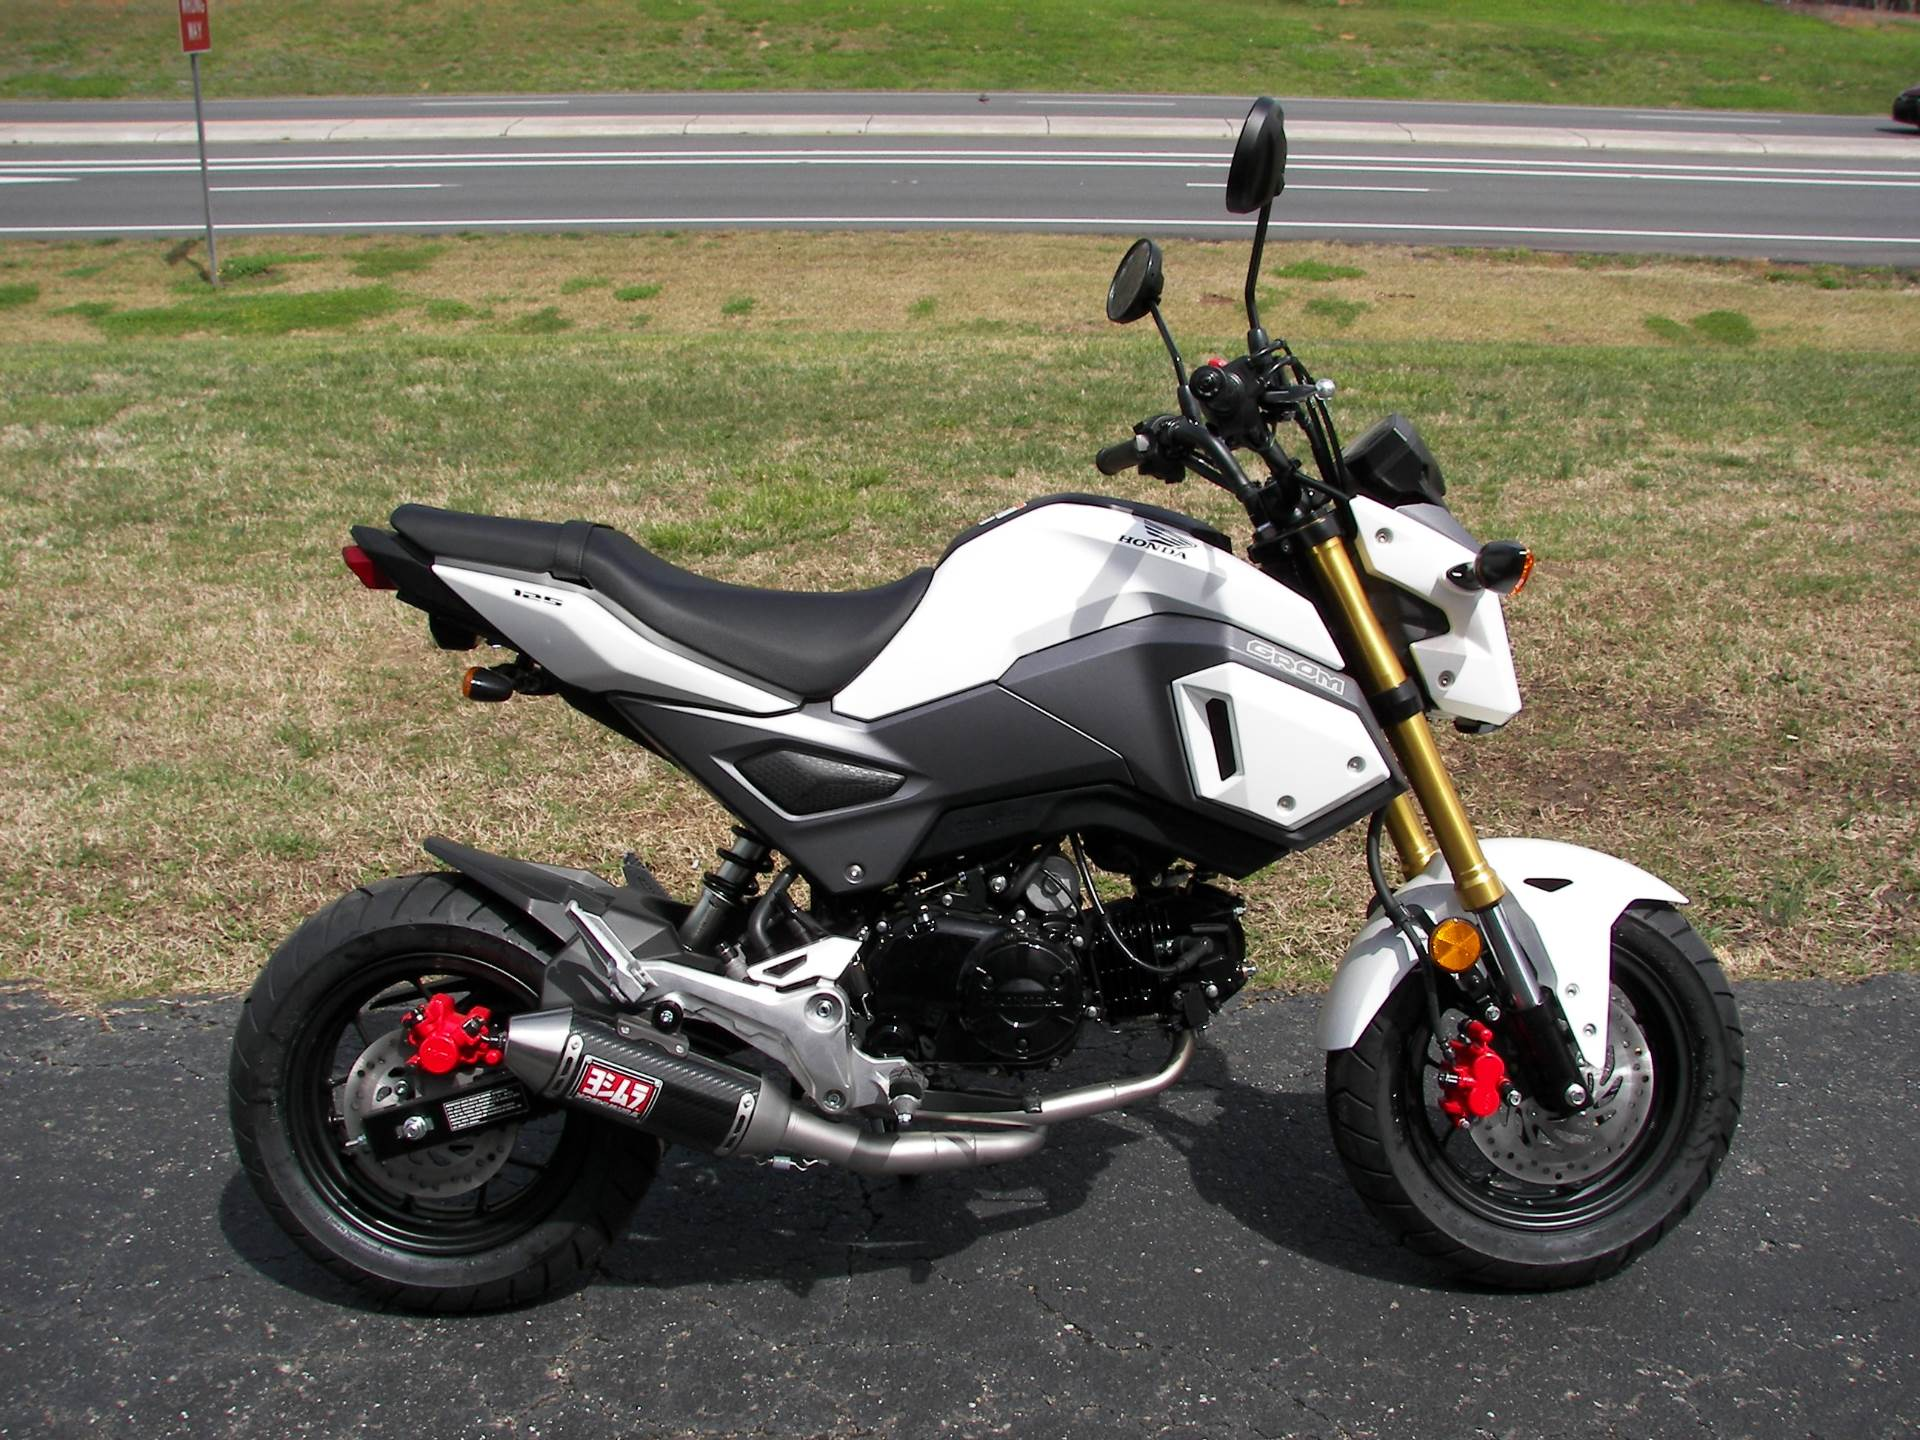 2018 Honda Grom Motorcycles Shelby North Carolina FP6601